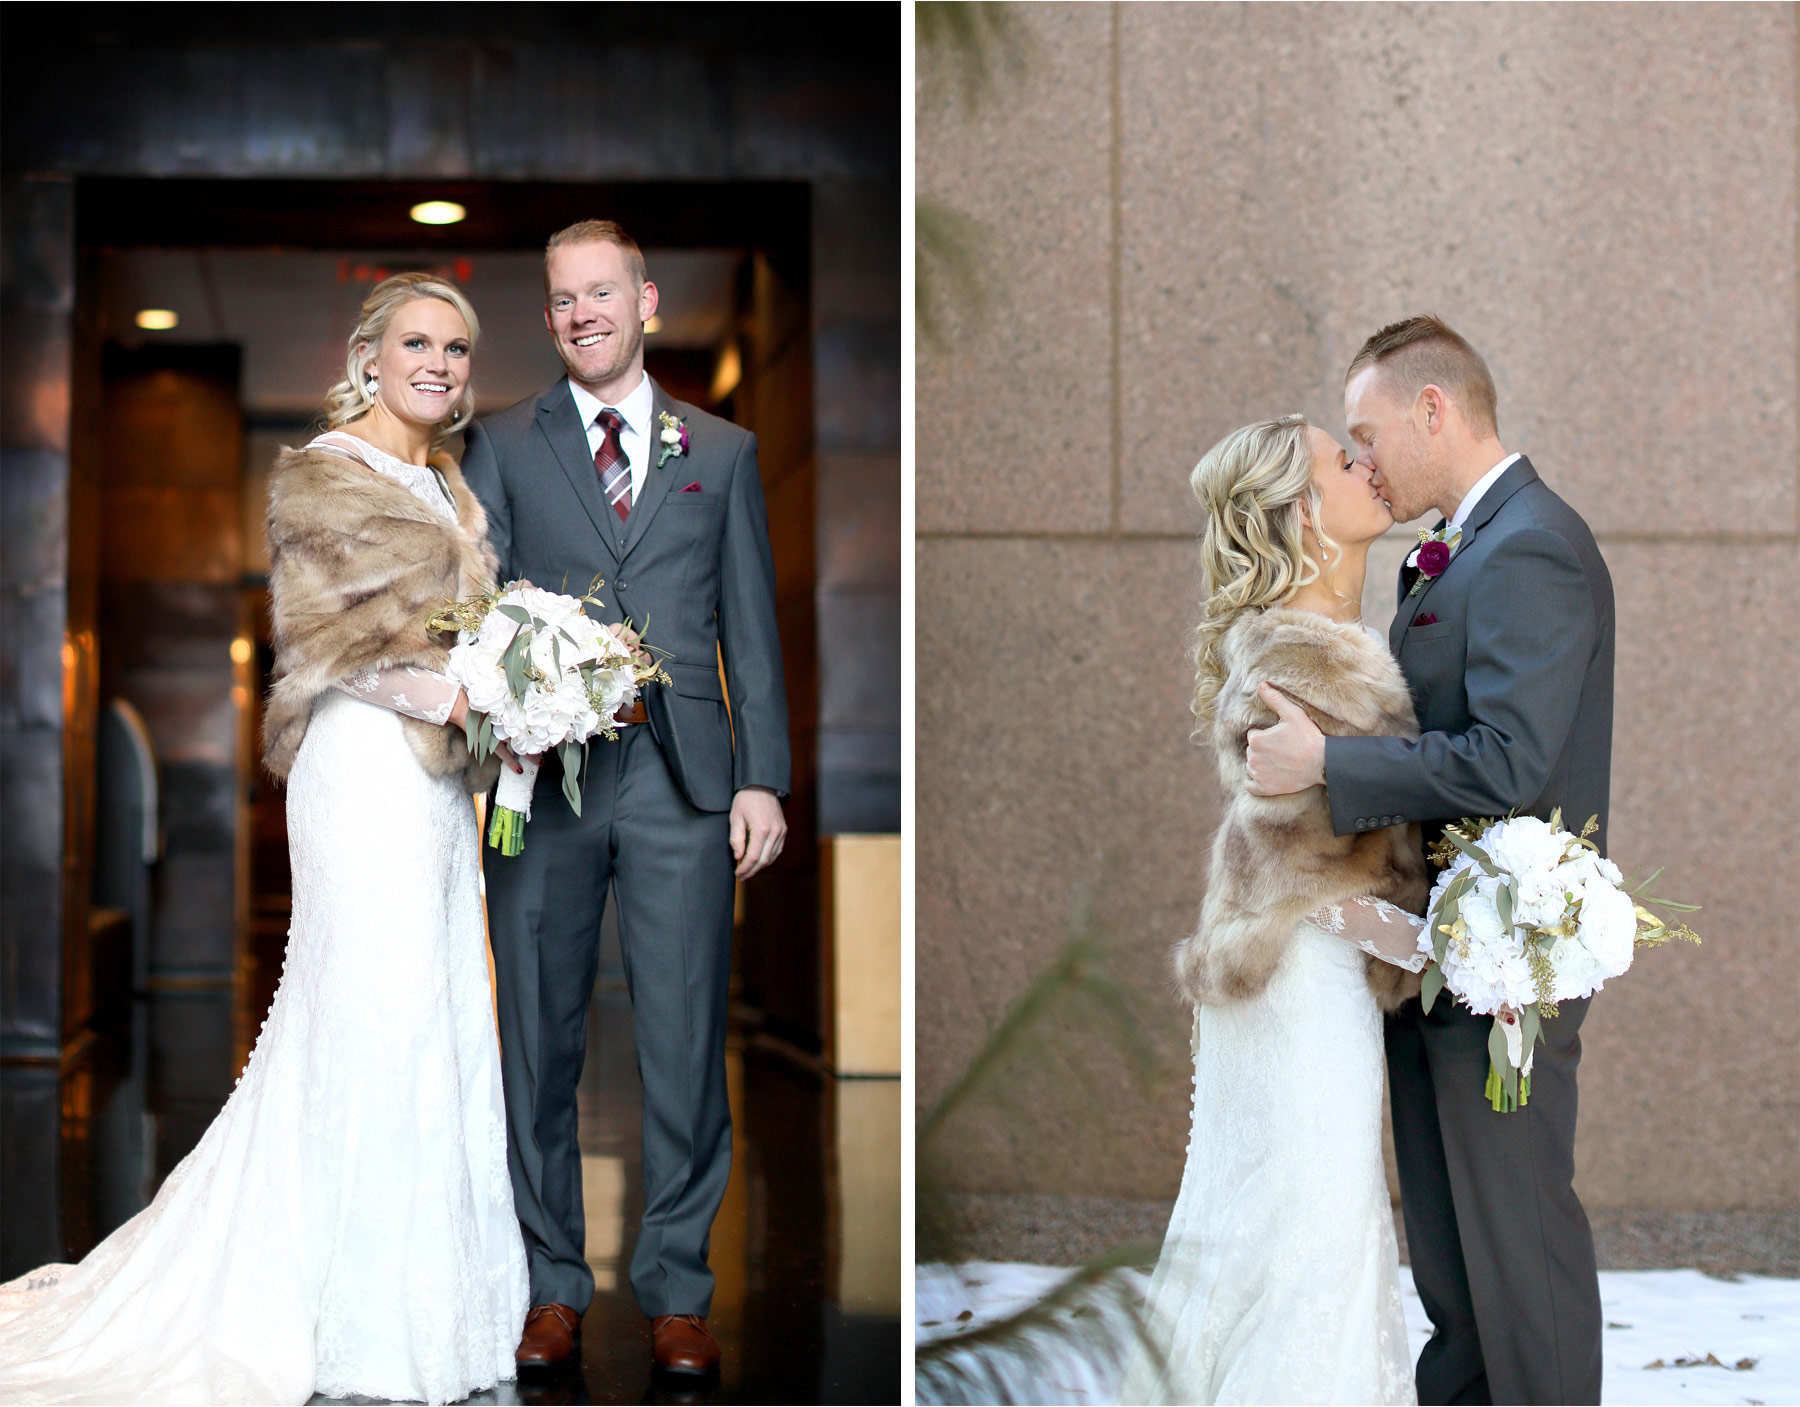 07-Minneapolis-Minnesota-Wedding-Photographer-by-Andrew-Vick-Photography-Winter-McNamara-Alumni-Center-First-Meeting-Look-Bride-Groom-Kiss-Embrace-Fur-Shrug-Brittany-and-Joseph.jpg